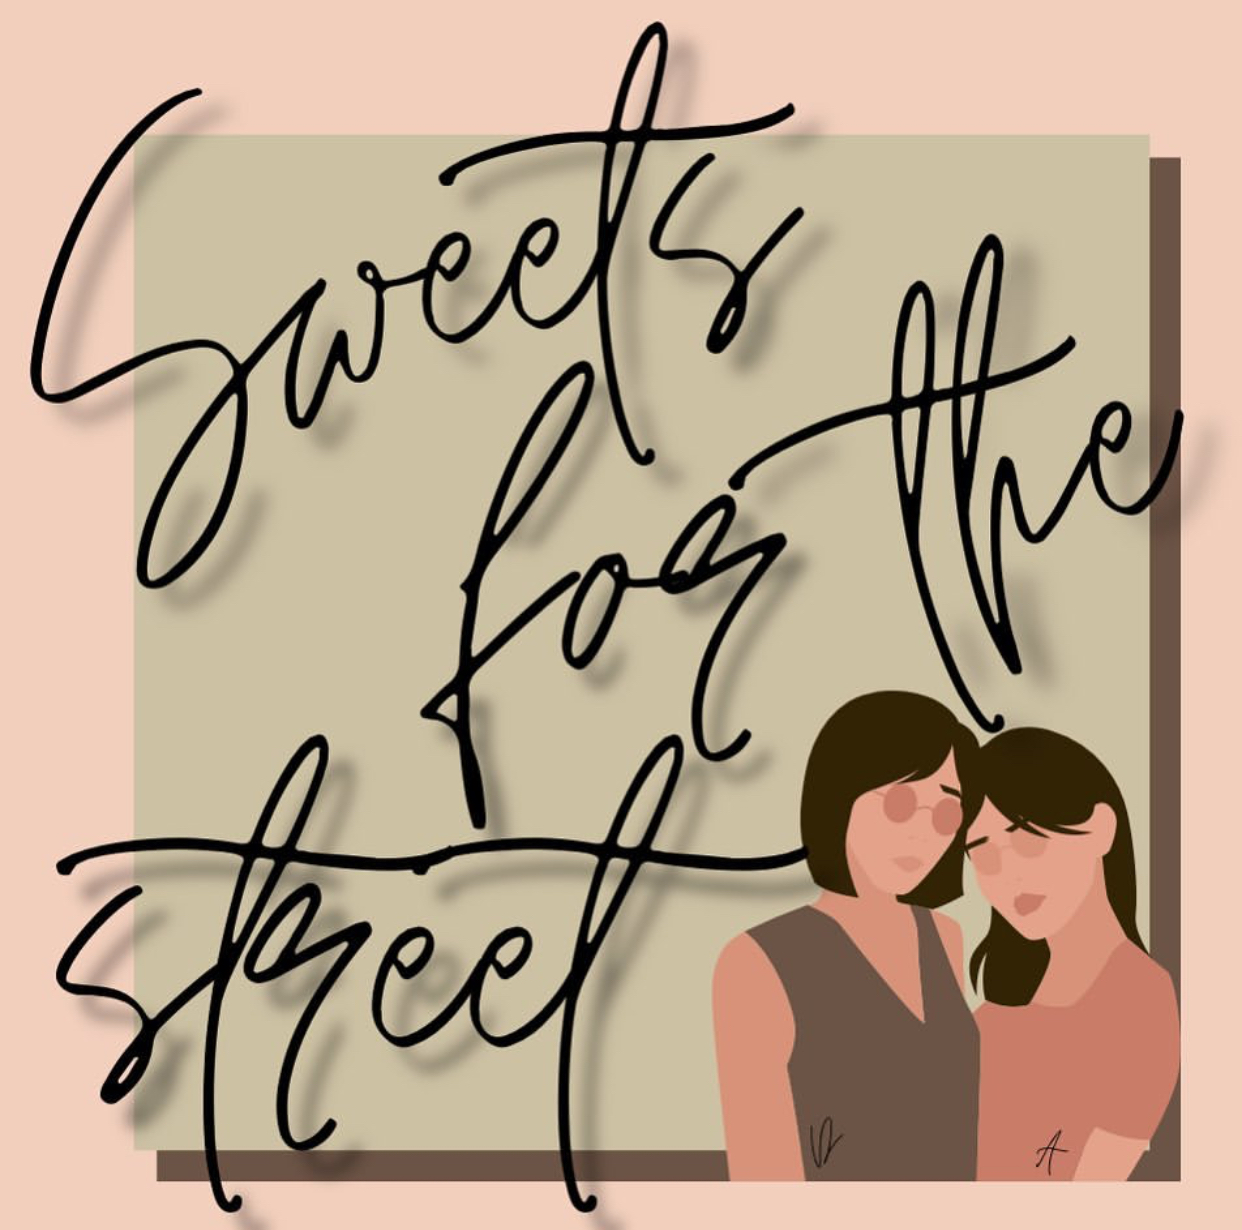 Sweets For The Street